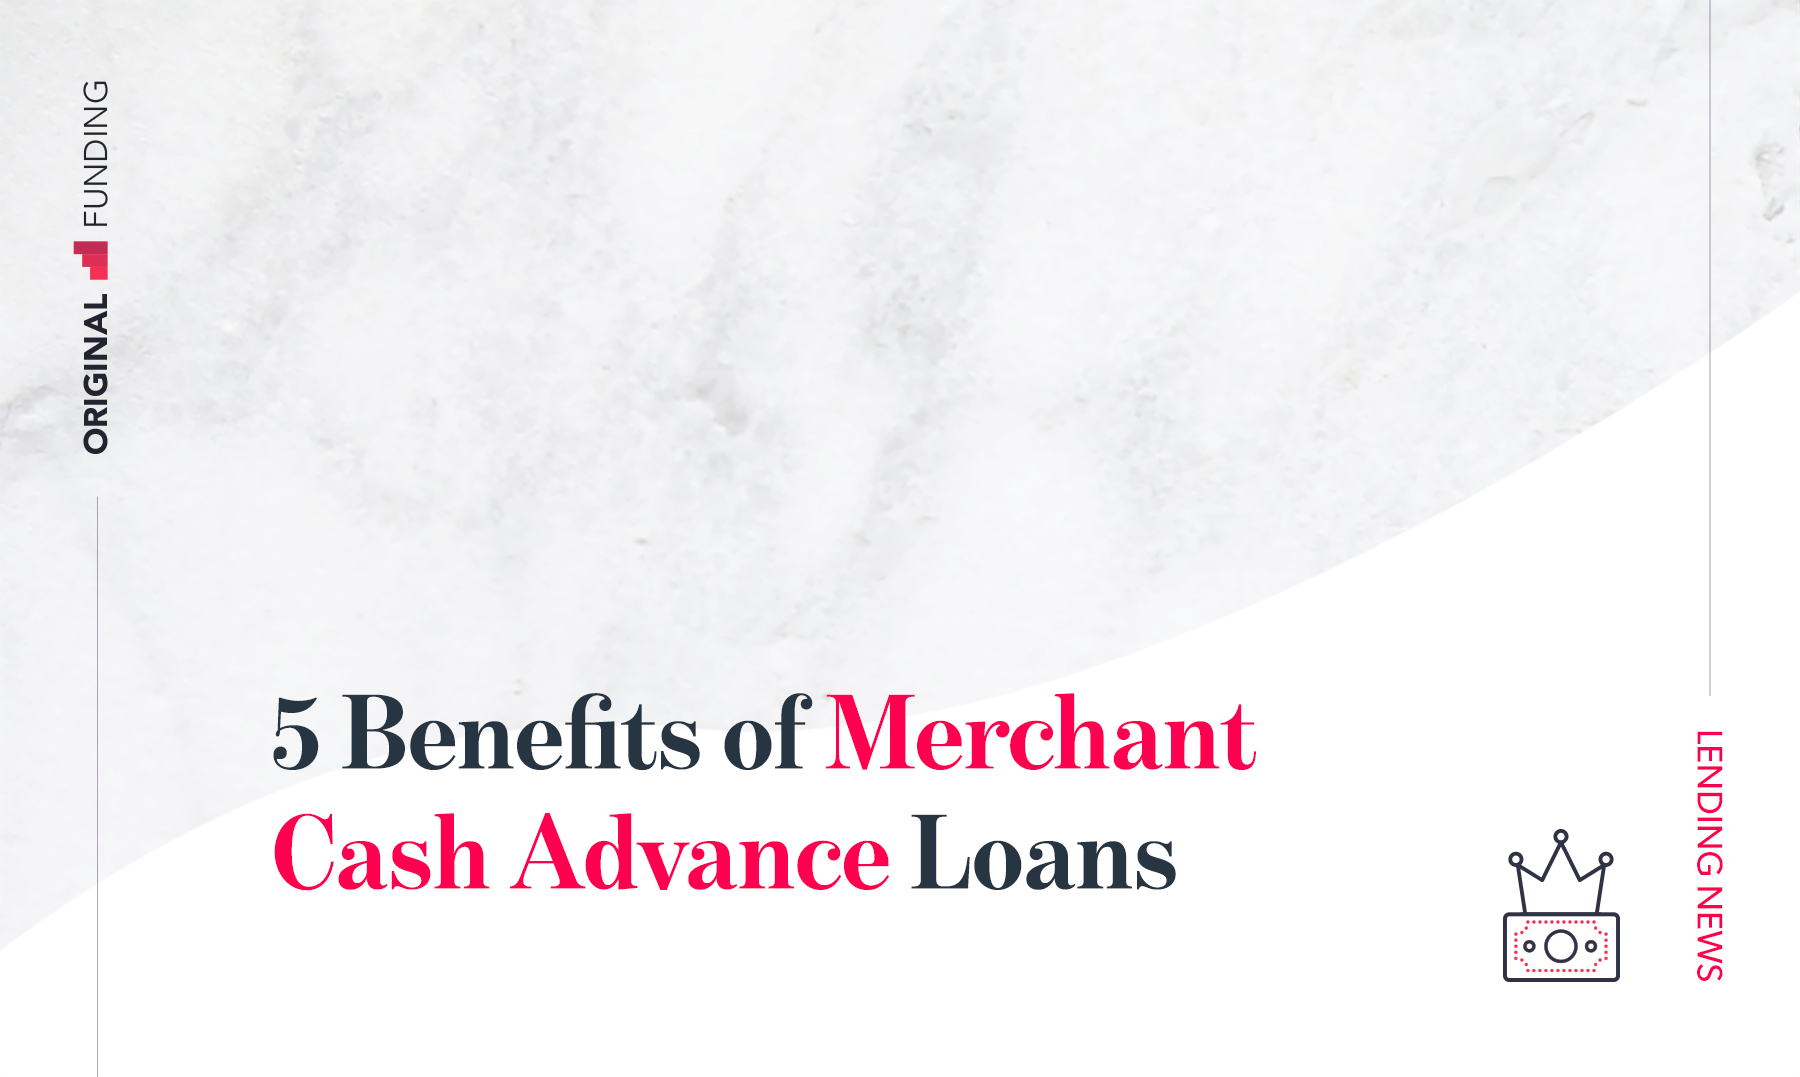 5 Benefits of Merchant Cash Advance Loans